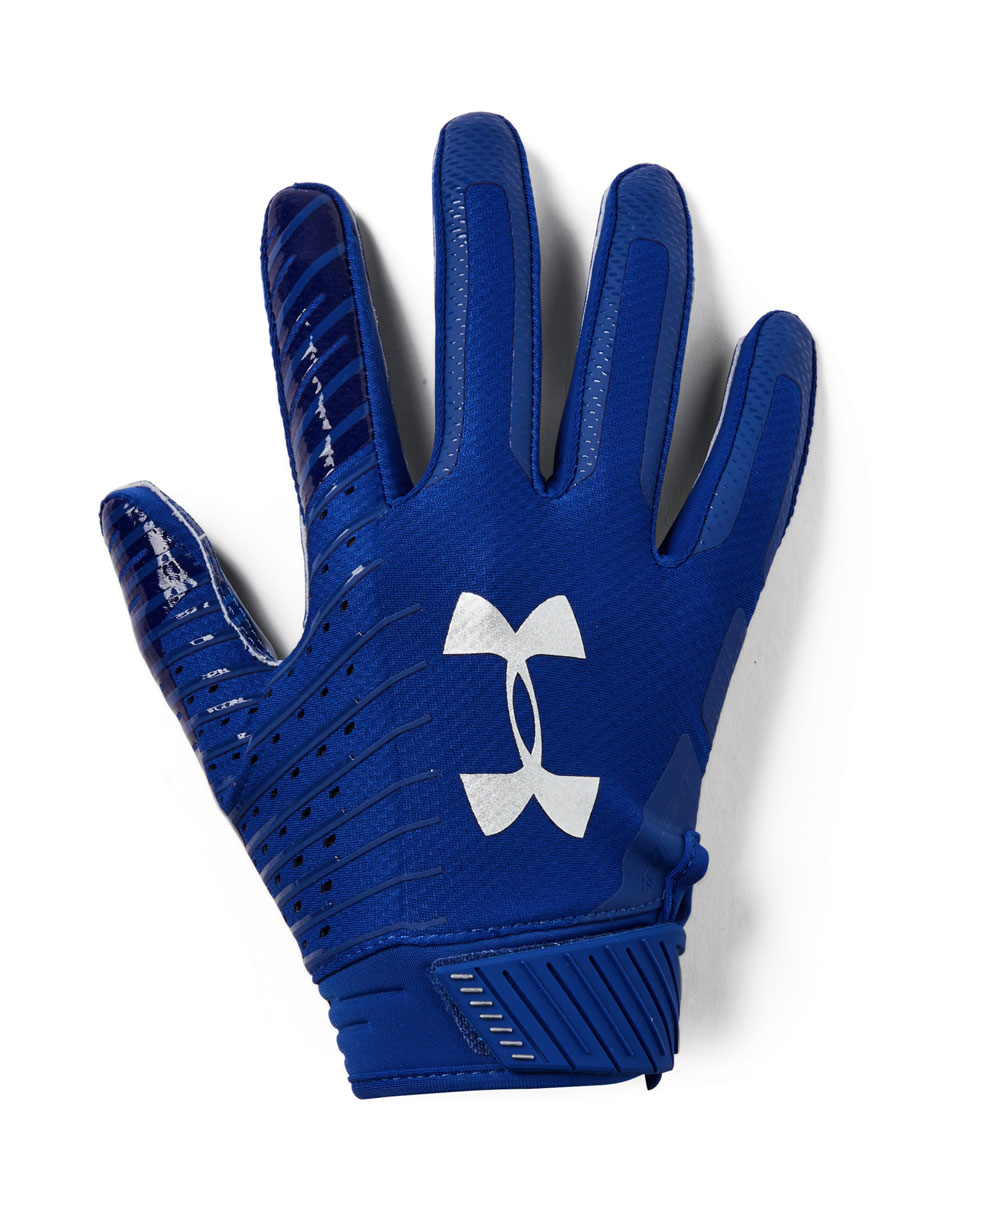 ae8ee19c0414c Under Armour Spotlight Men's Football Gloves Royal 400